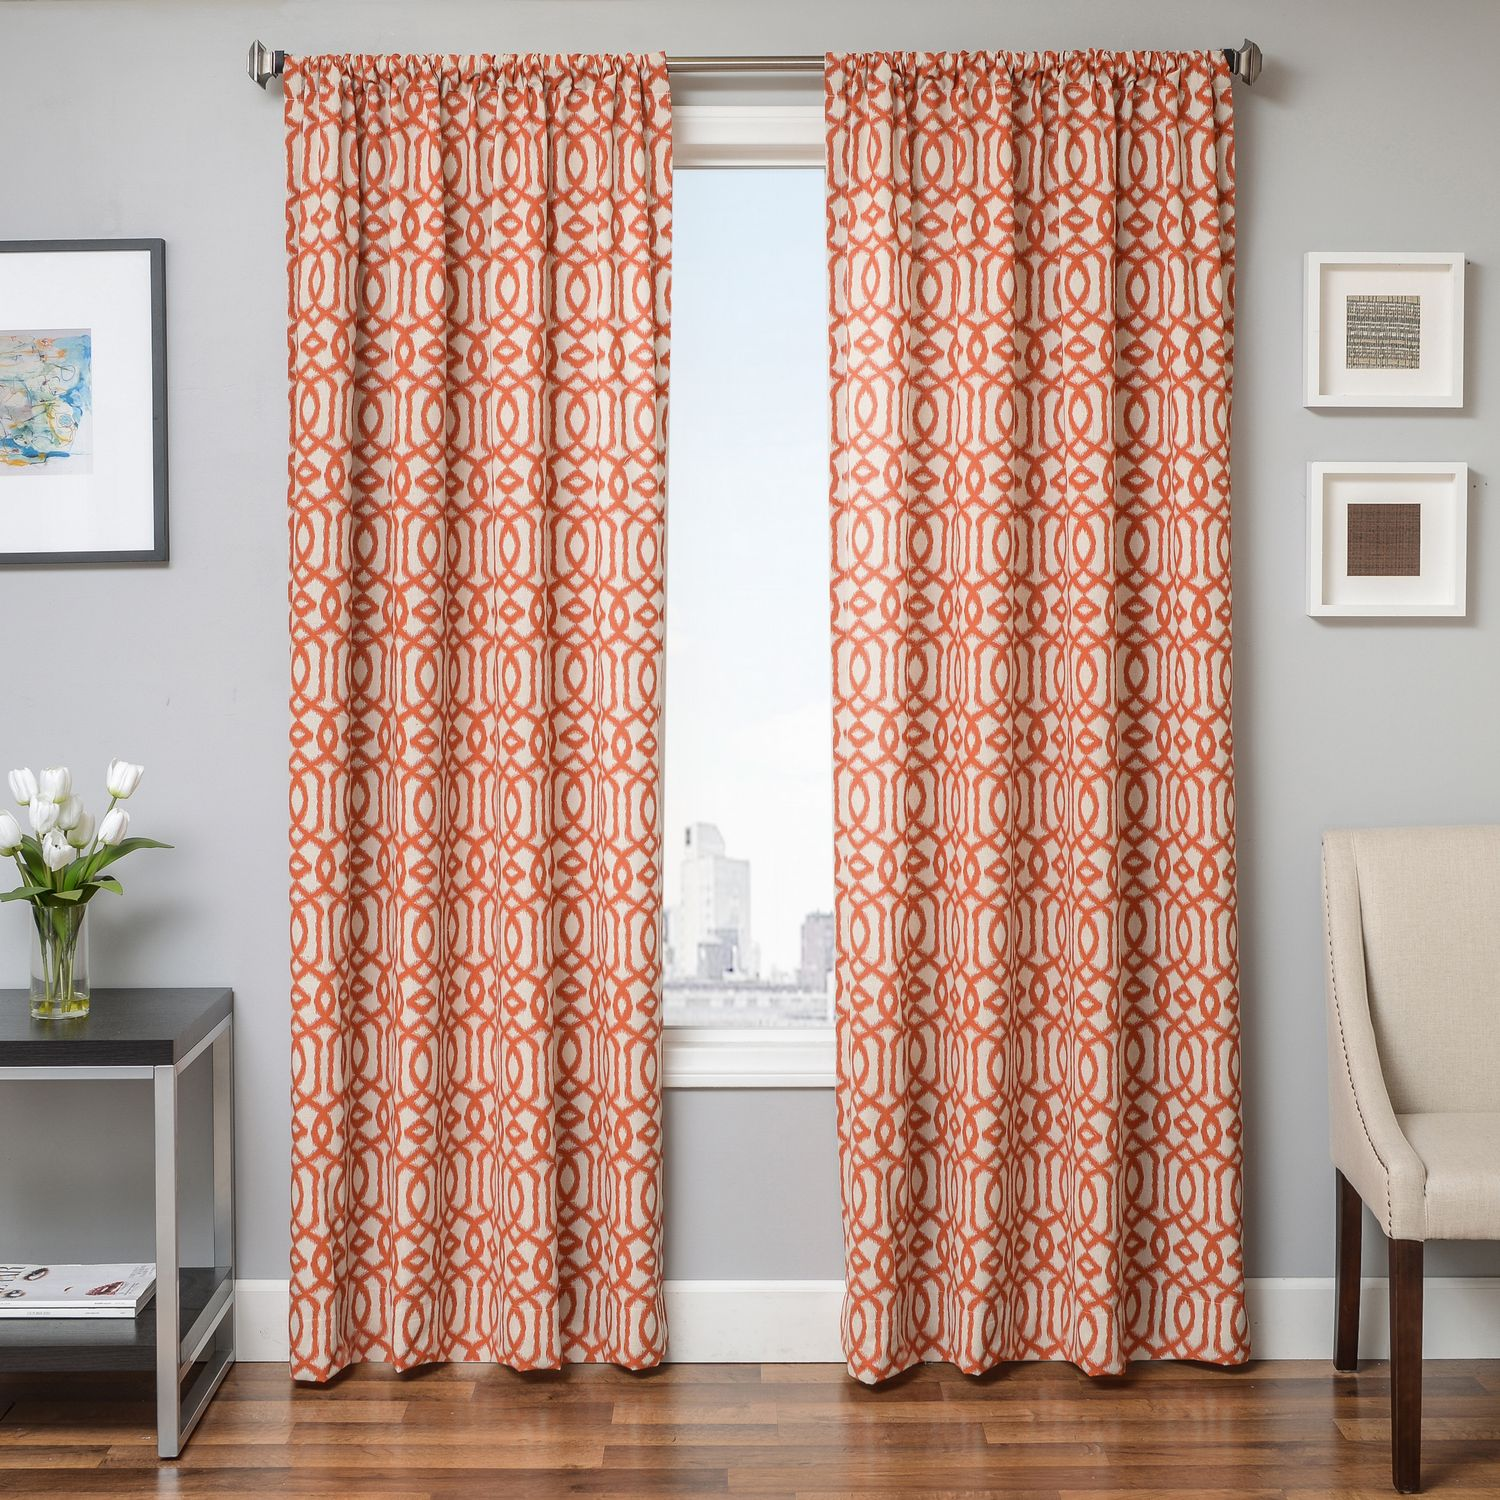 sun curtains unique tangerine drapes cute on orange images zero pinterest furniture elegant size curtain full of compressed blackout best